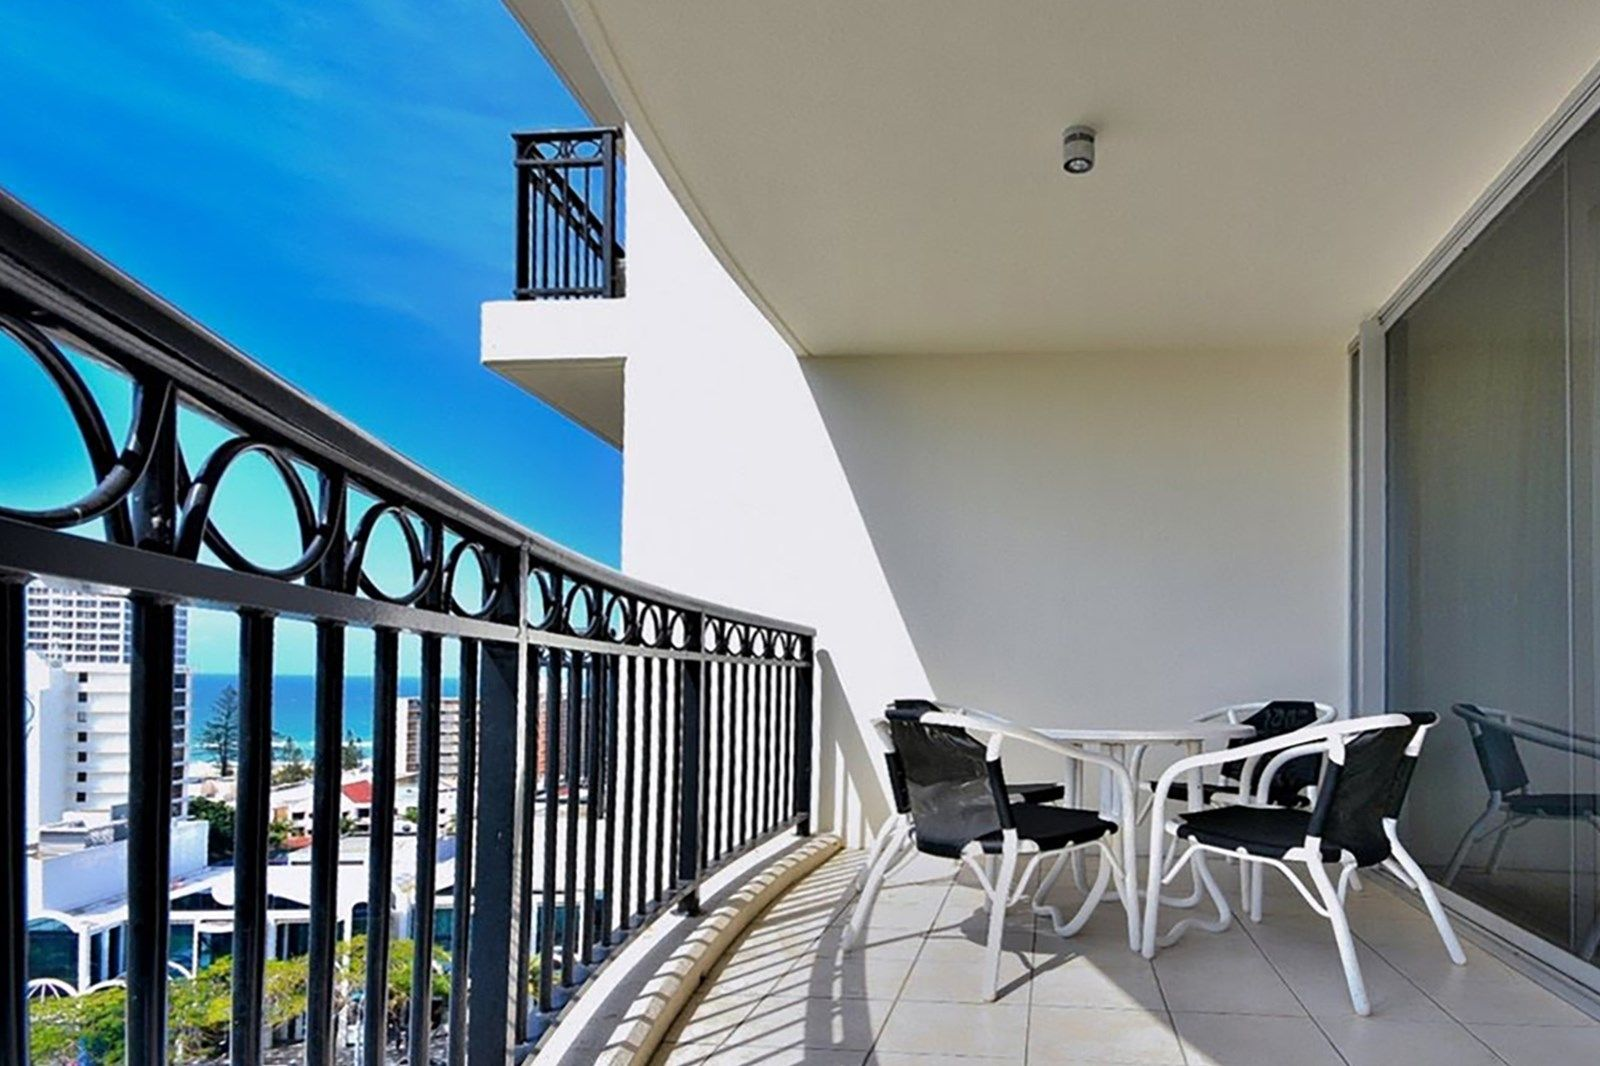 2 Bedroom Apartment For Sale At 1112 23 Ferny Avenue Surfers Paradise Qld 4217 View Property Photos Floor Plans Local School Catchmen Apartments For Sale 2 Bedroom Apartment Floor Plans